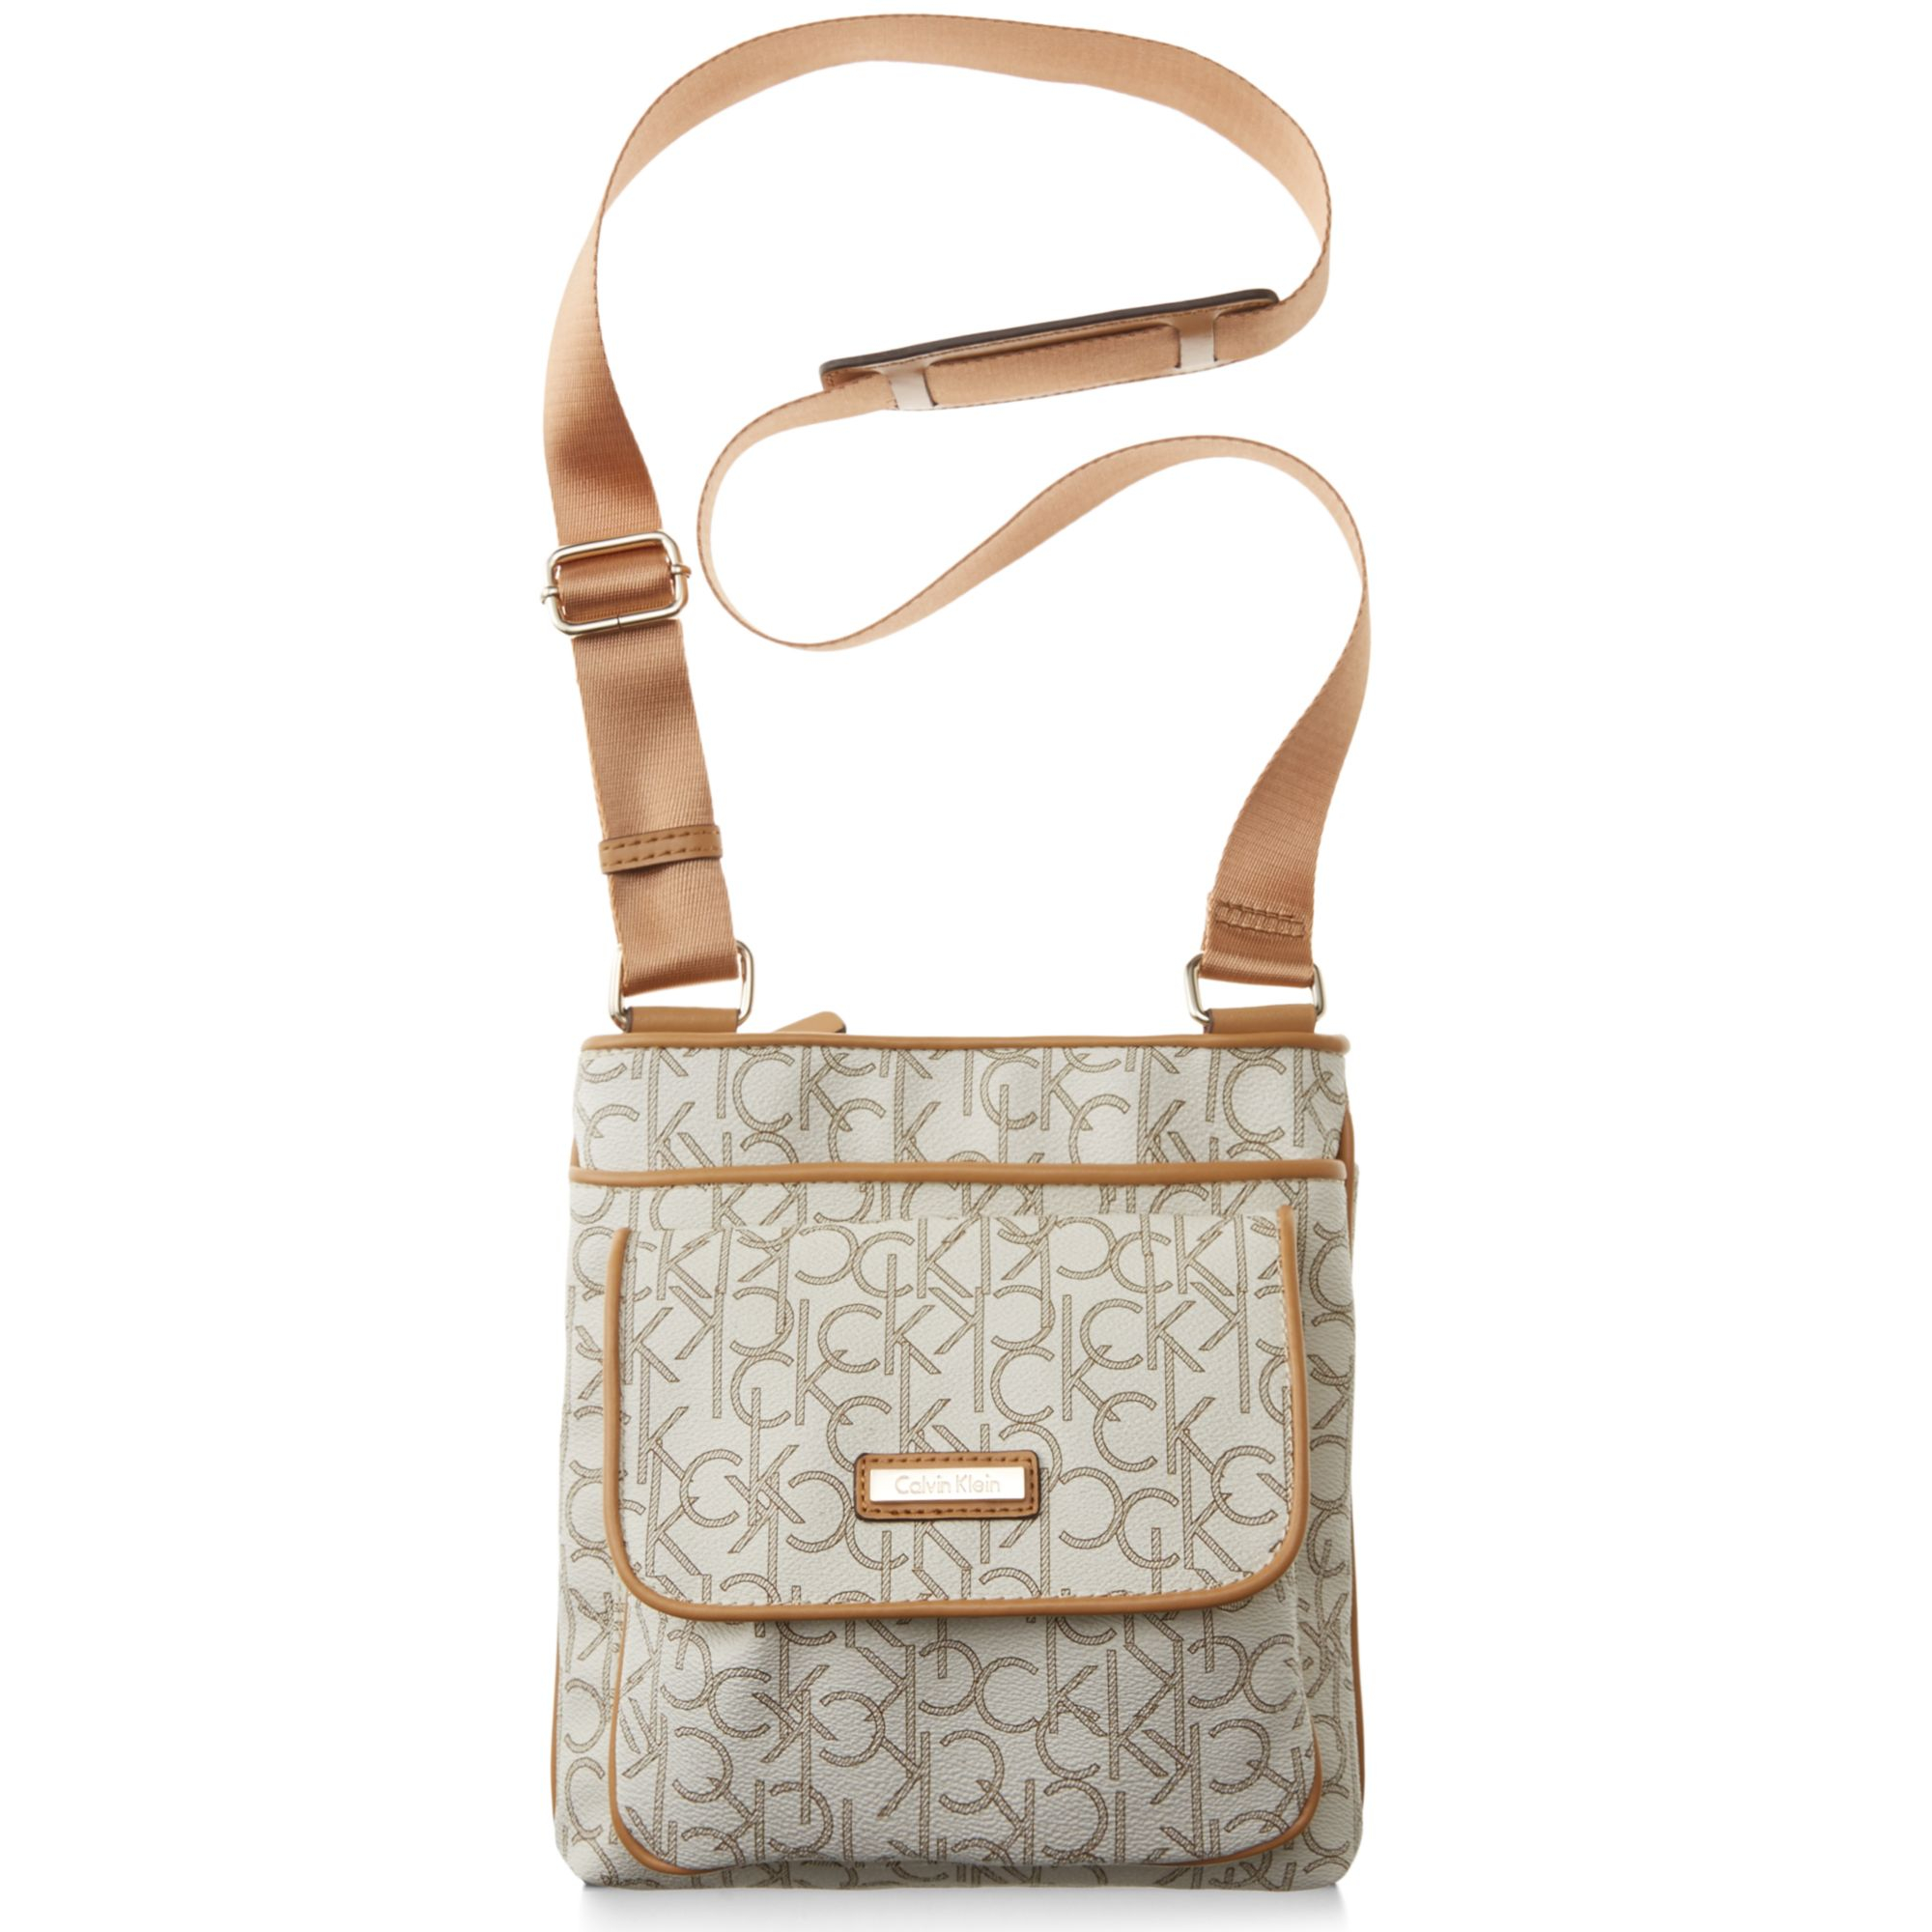 70814ee476 Gallery. Previously sold at: Macy's · Women's Calvin Klein Crossbody